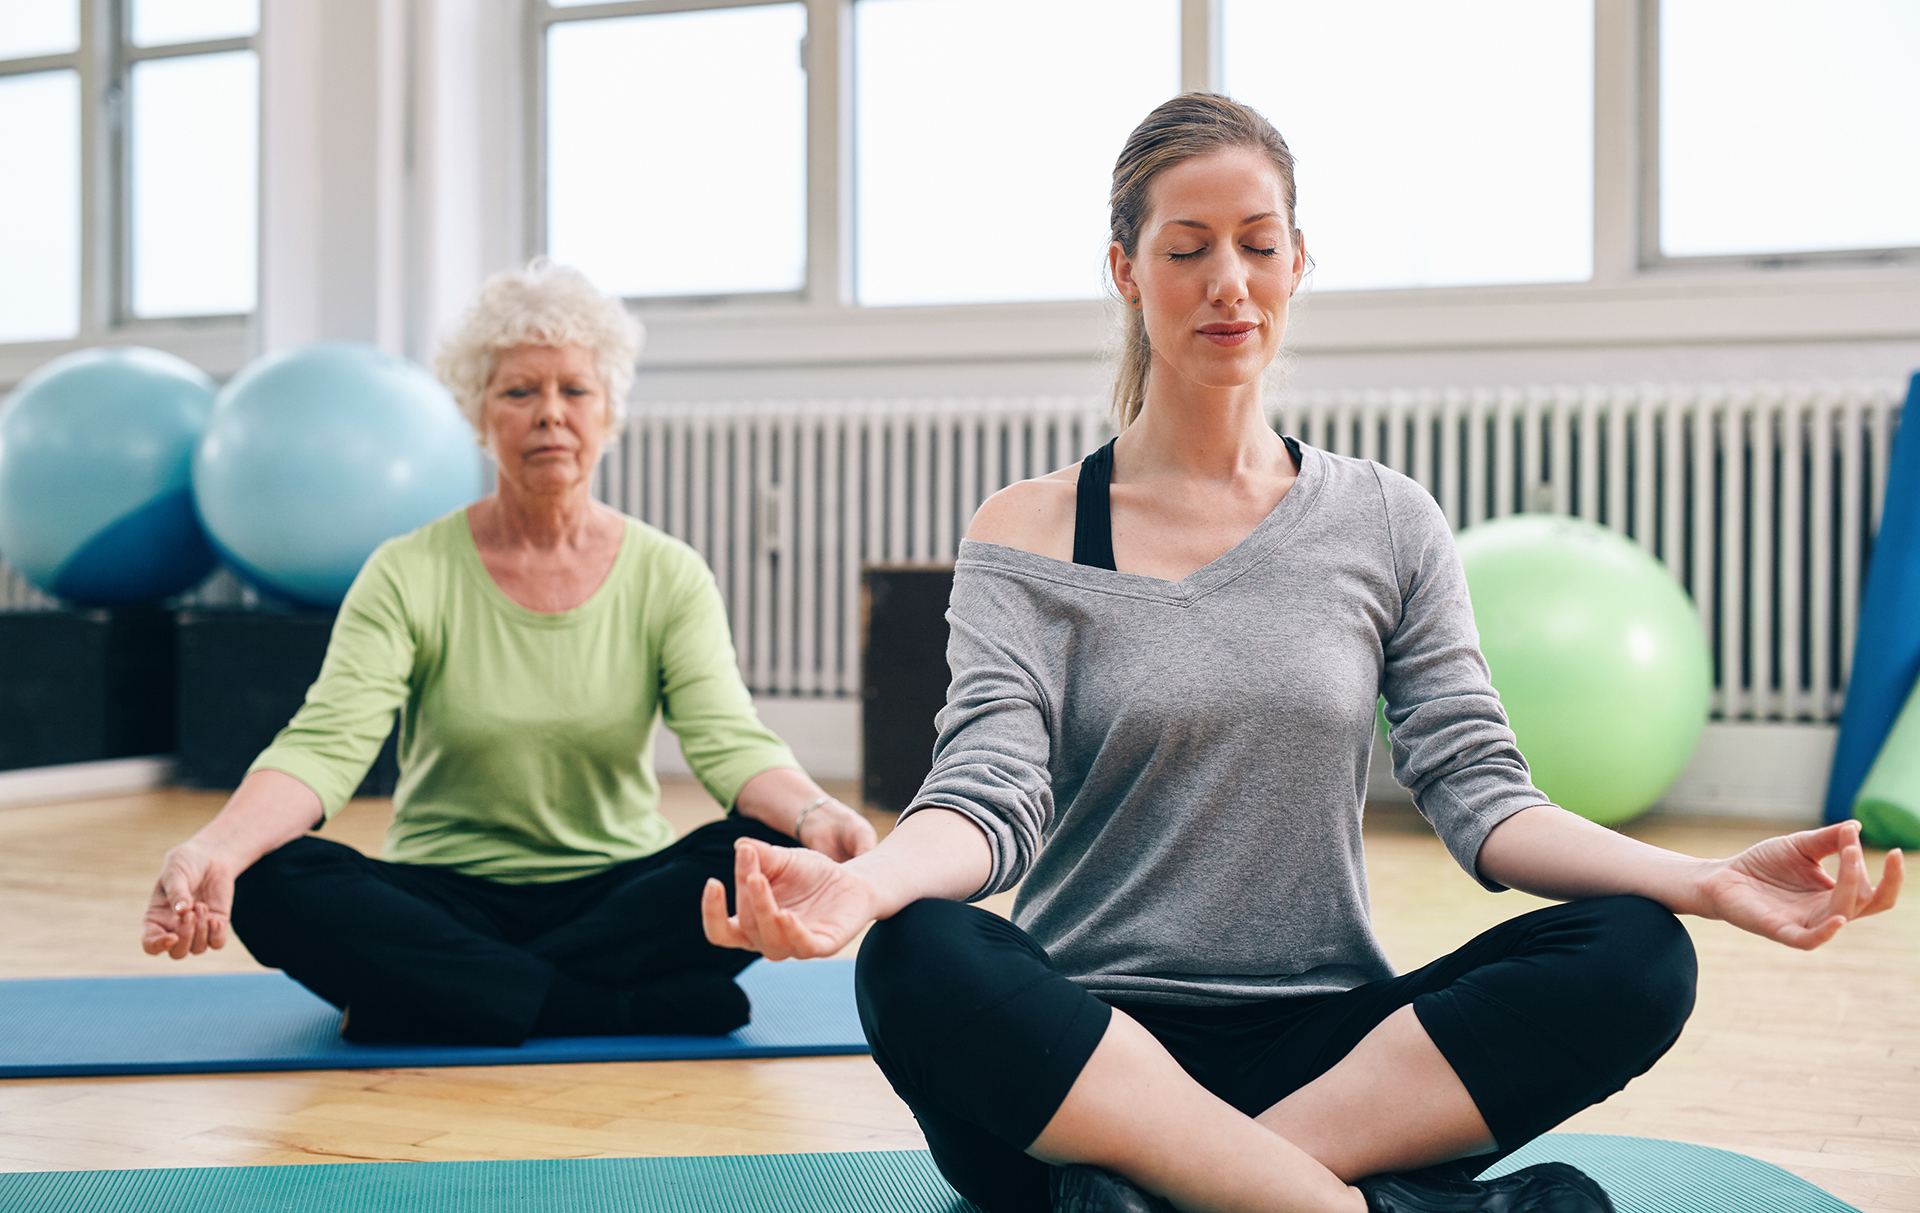 Two women practicing yoga in class. Female trainer and senior woman sitting in lotus position meditating.